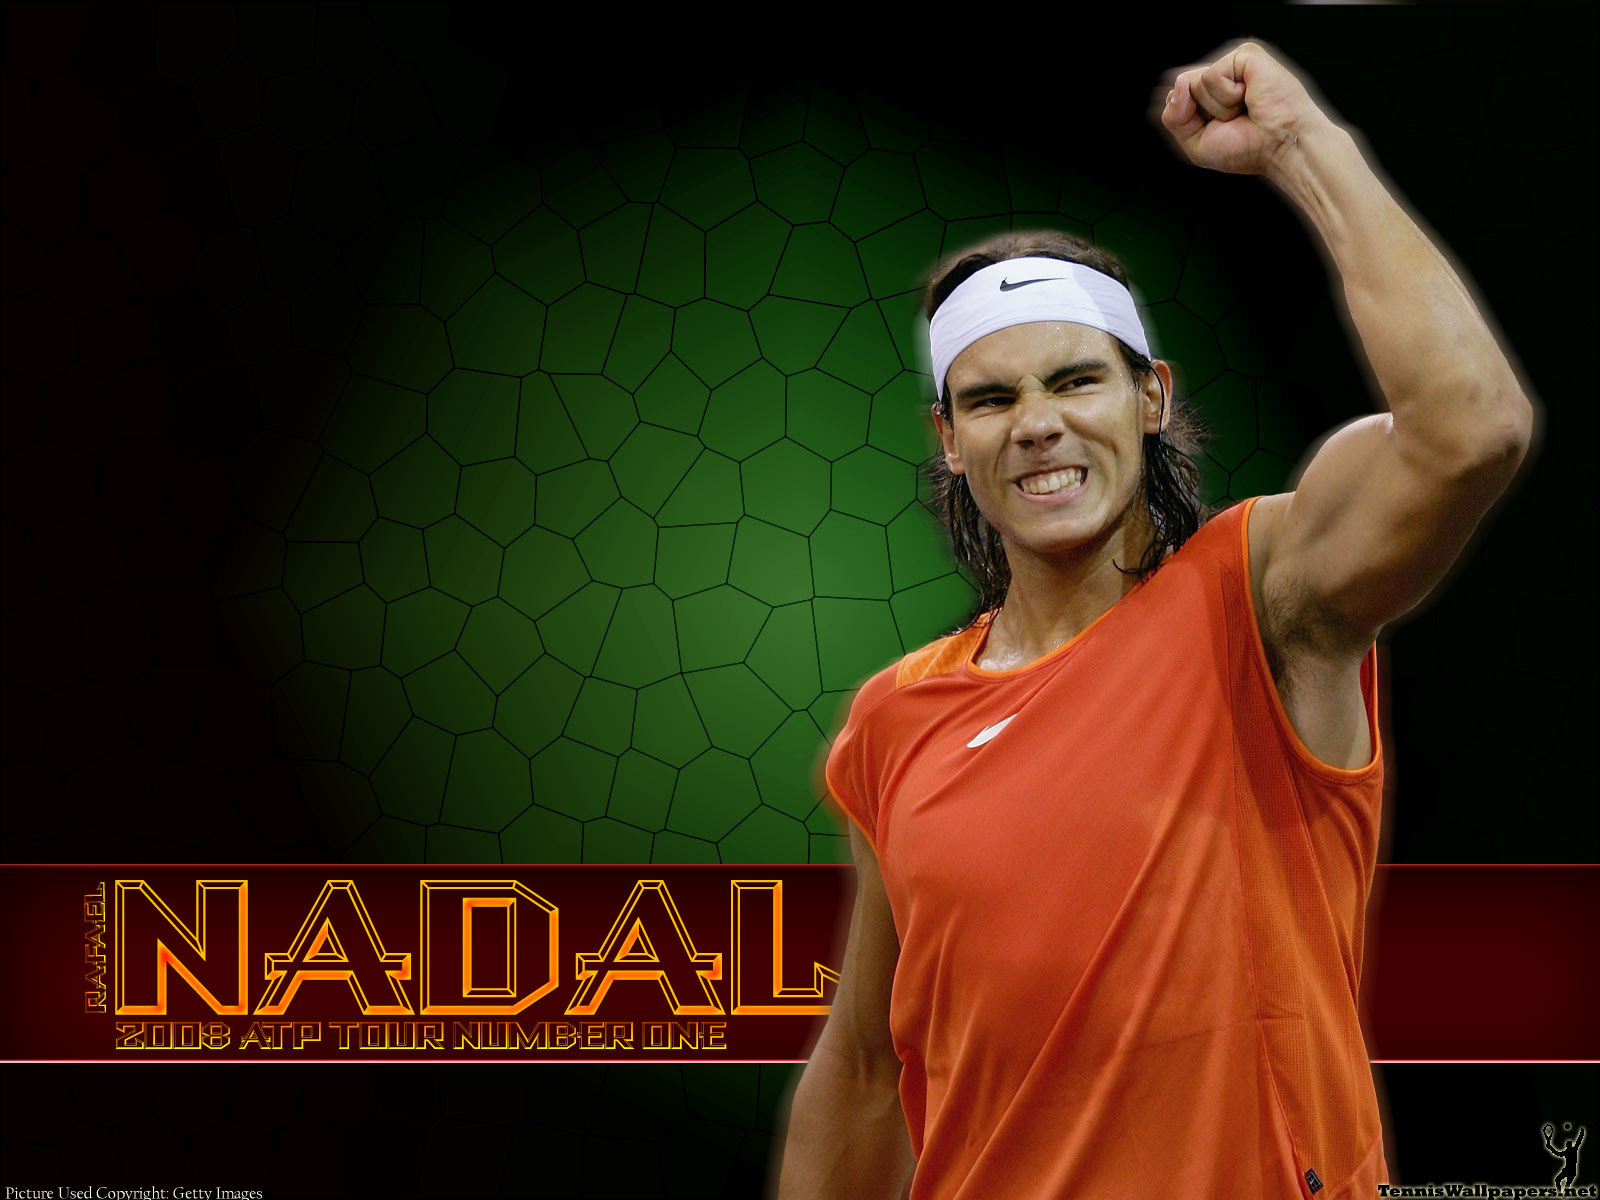 new lifestyle sports: rafael nadal wallpapers